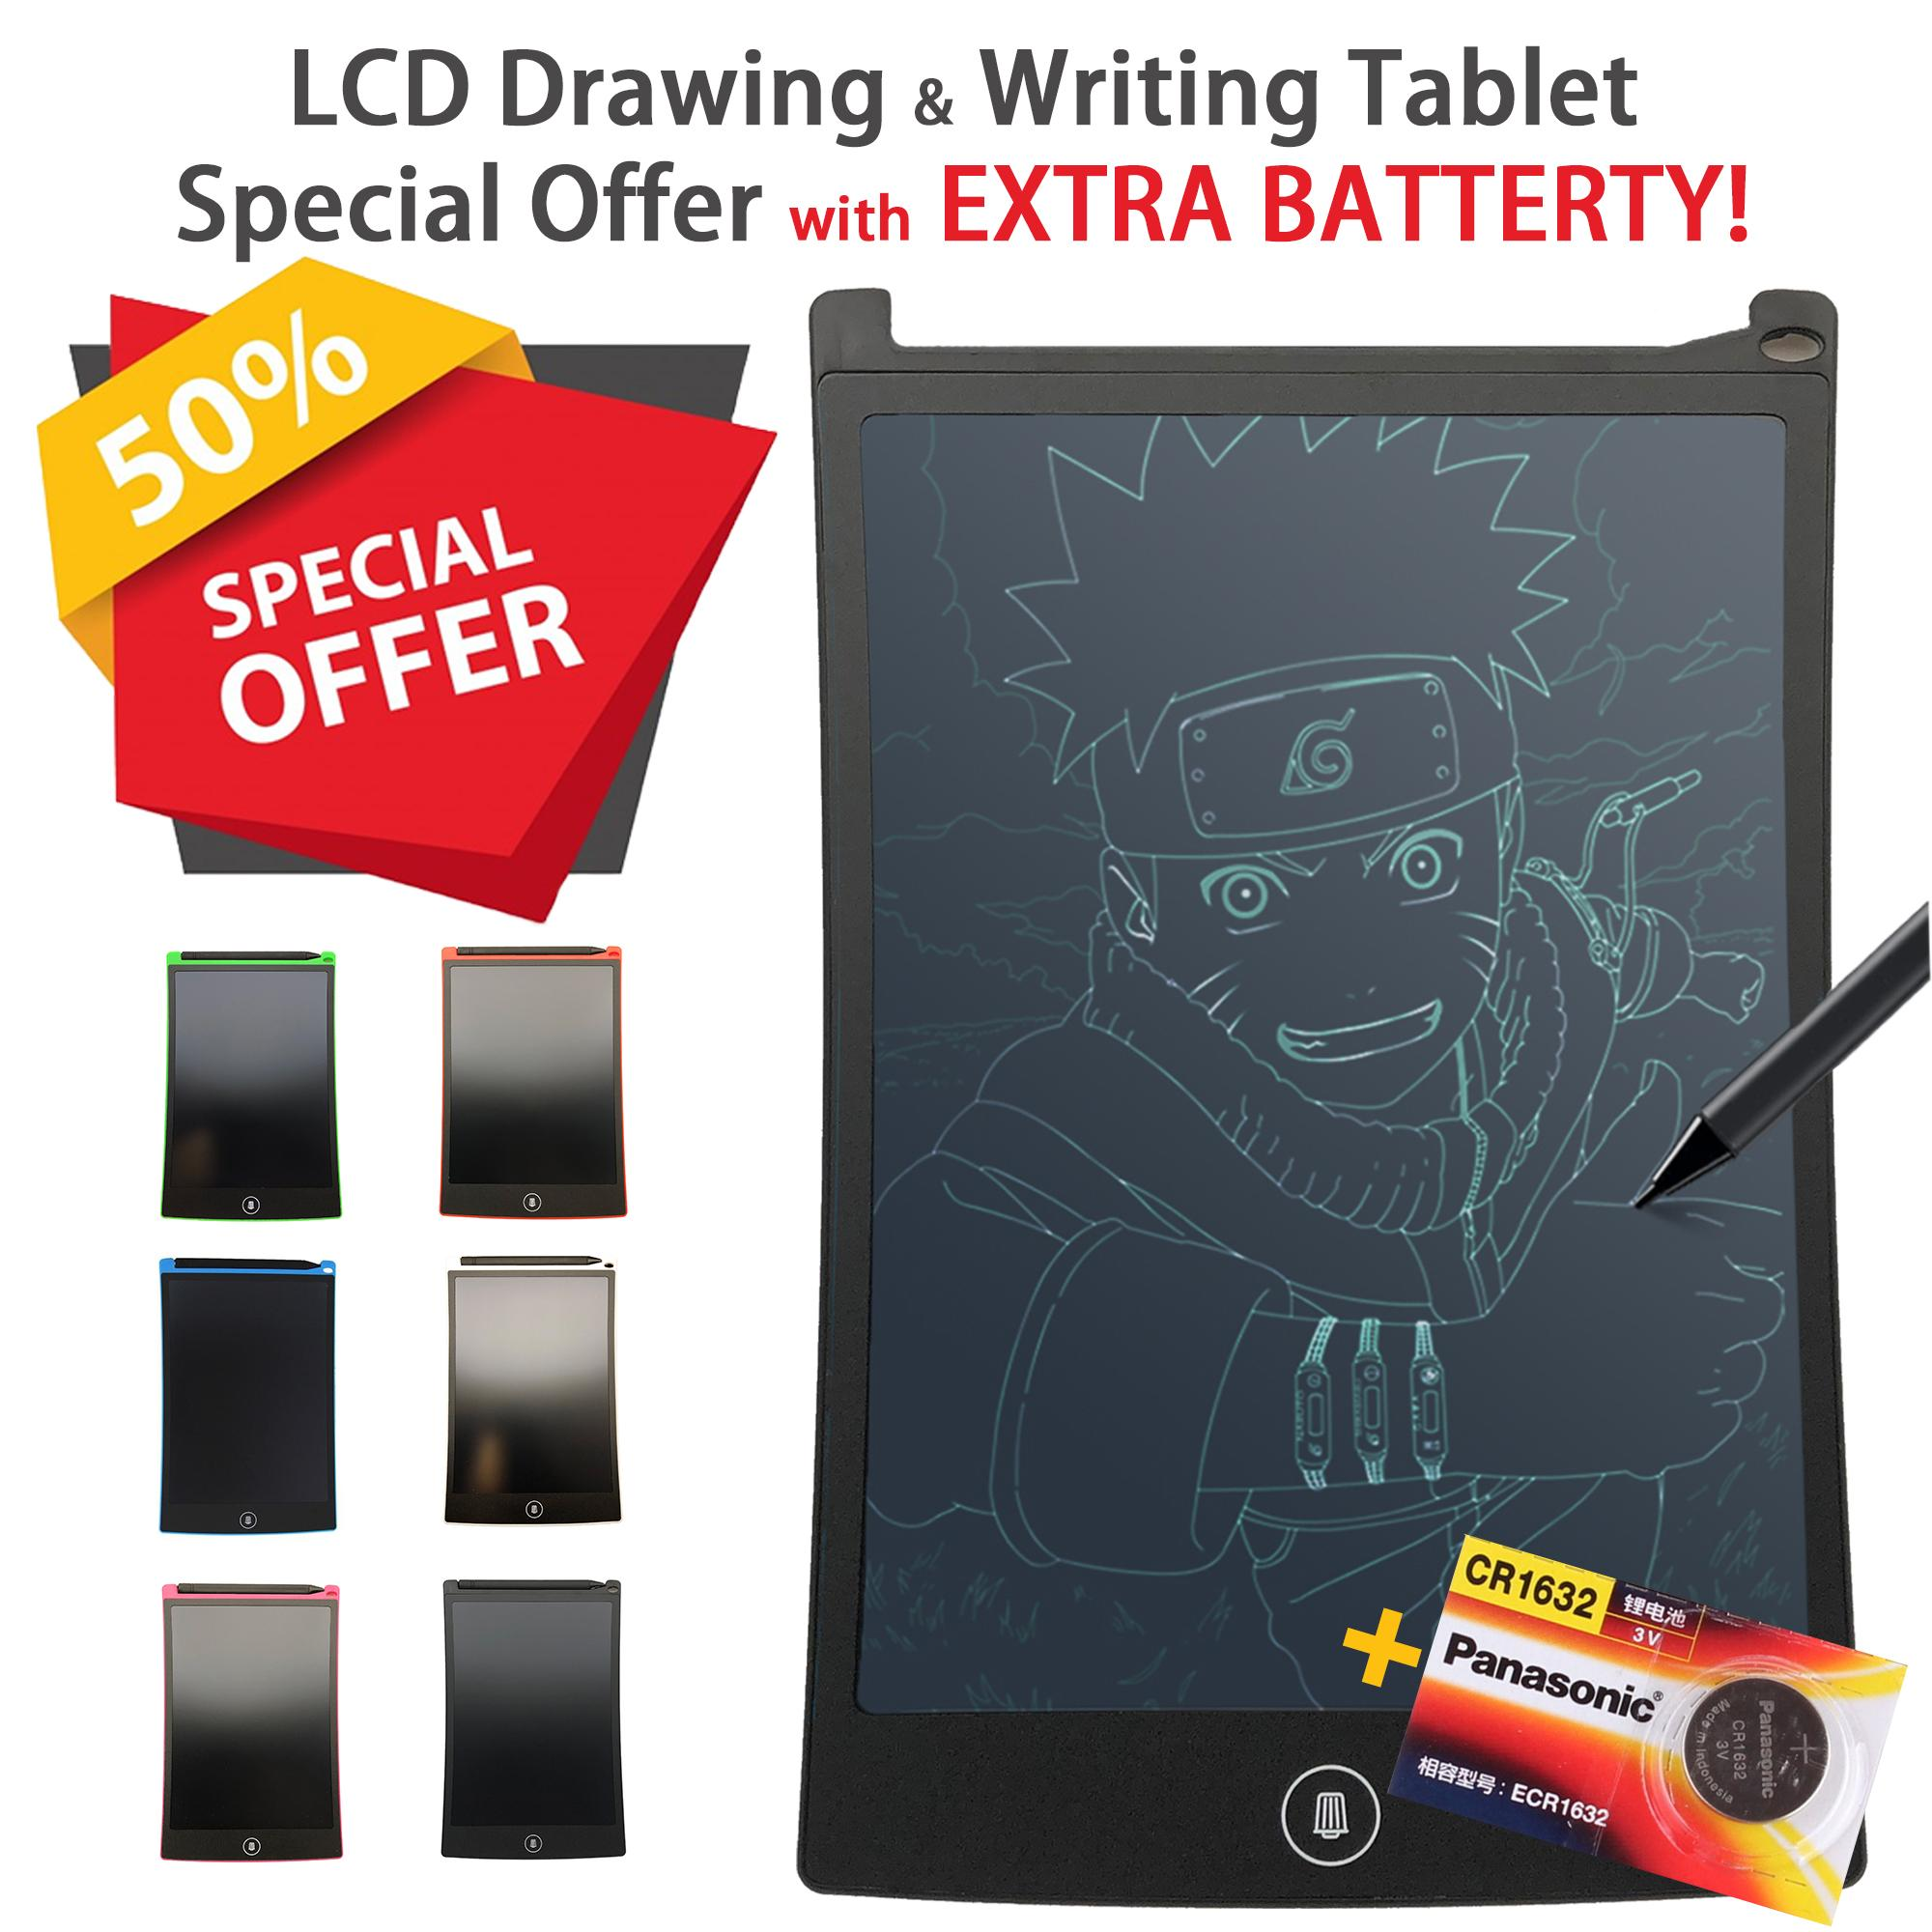 8.5 Inch LCD Ultra Bright Drawing & Writing Memo Pad Tablet Boogie Board Digital Writing & Digital Drawing Graphics Board for Home Office & for Children